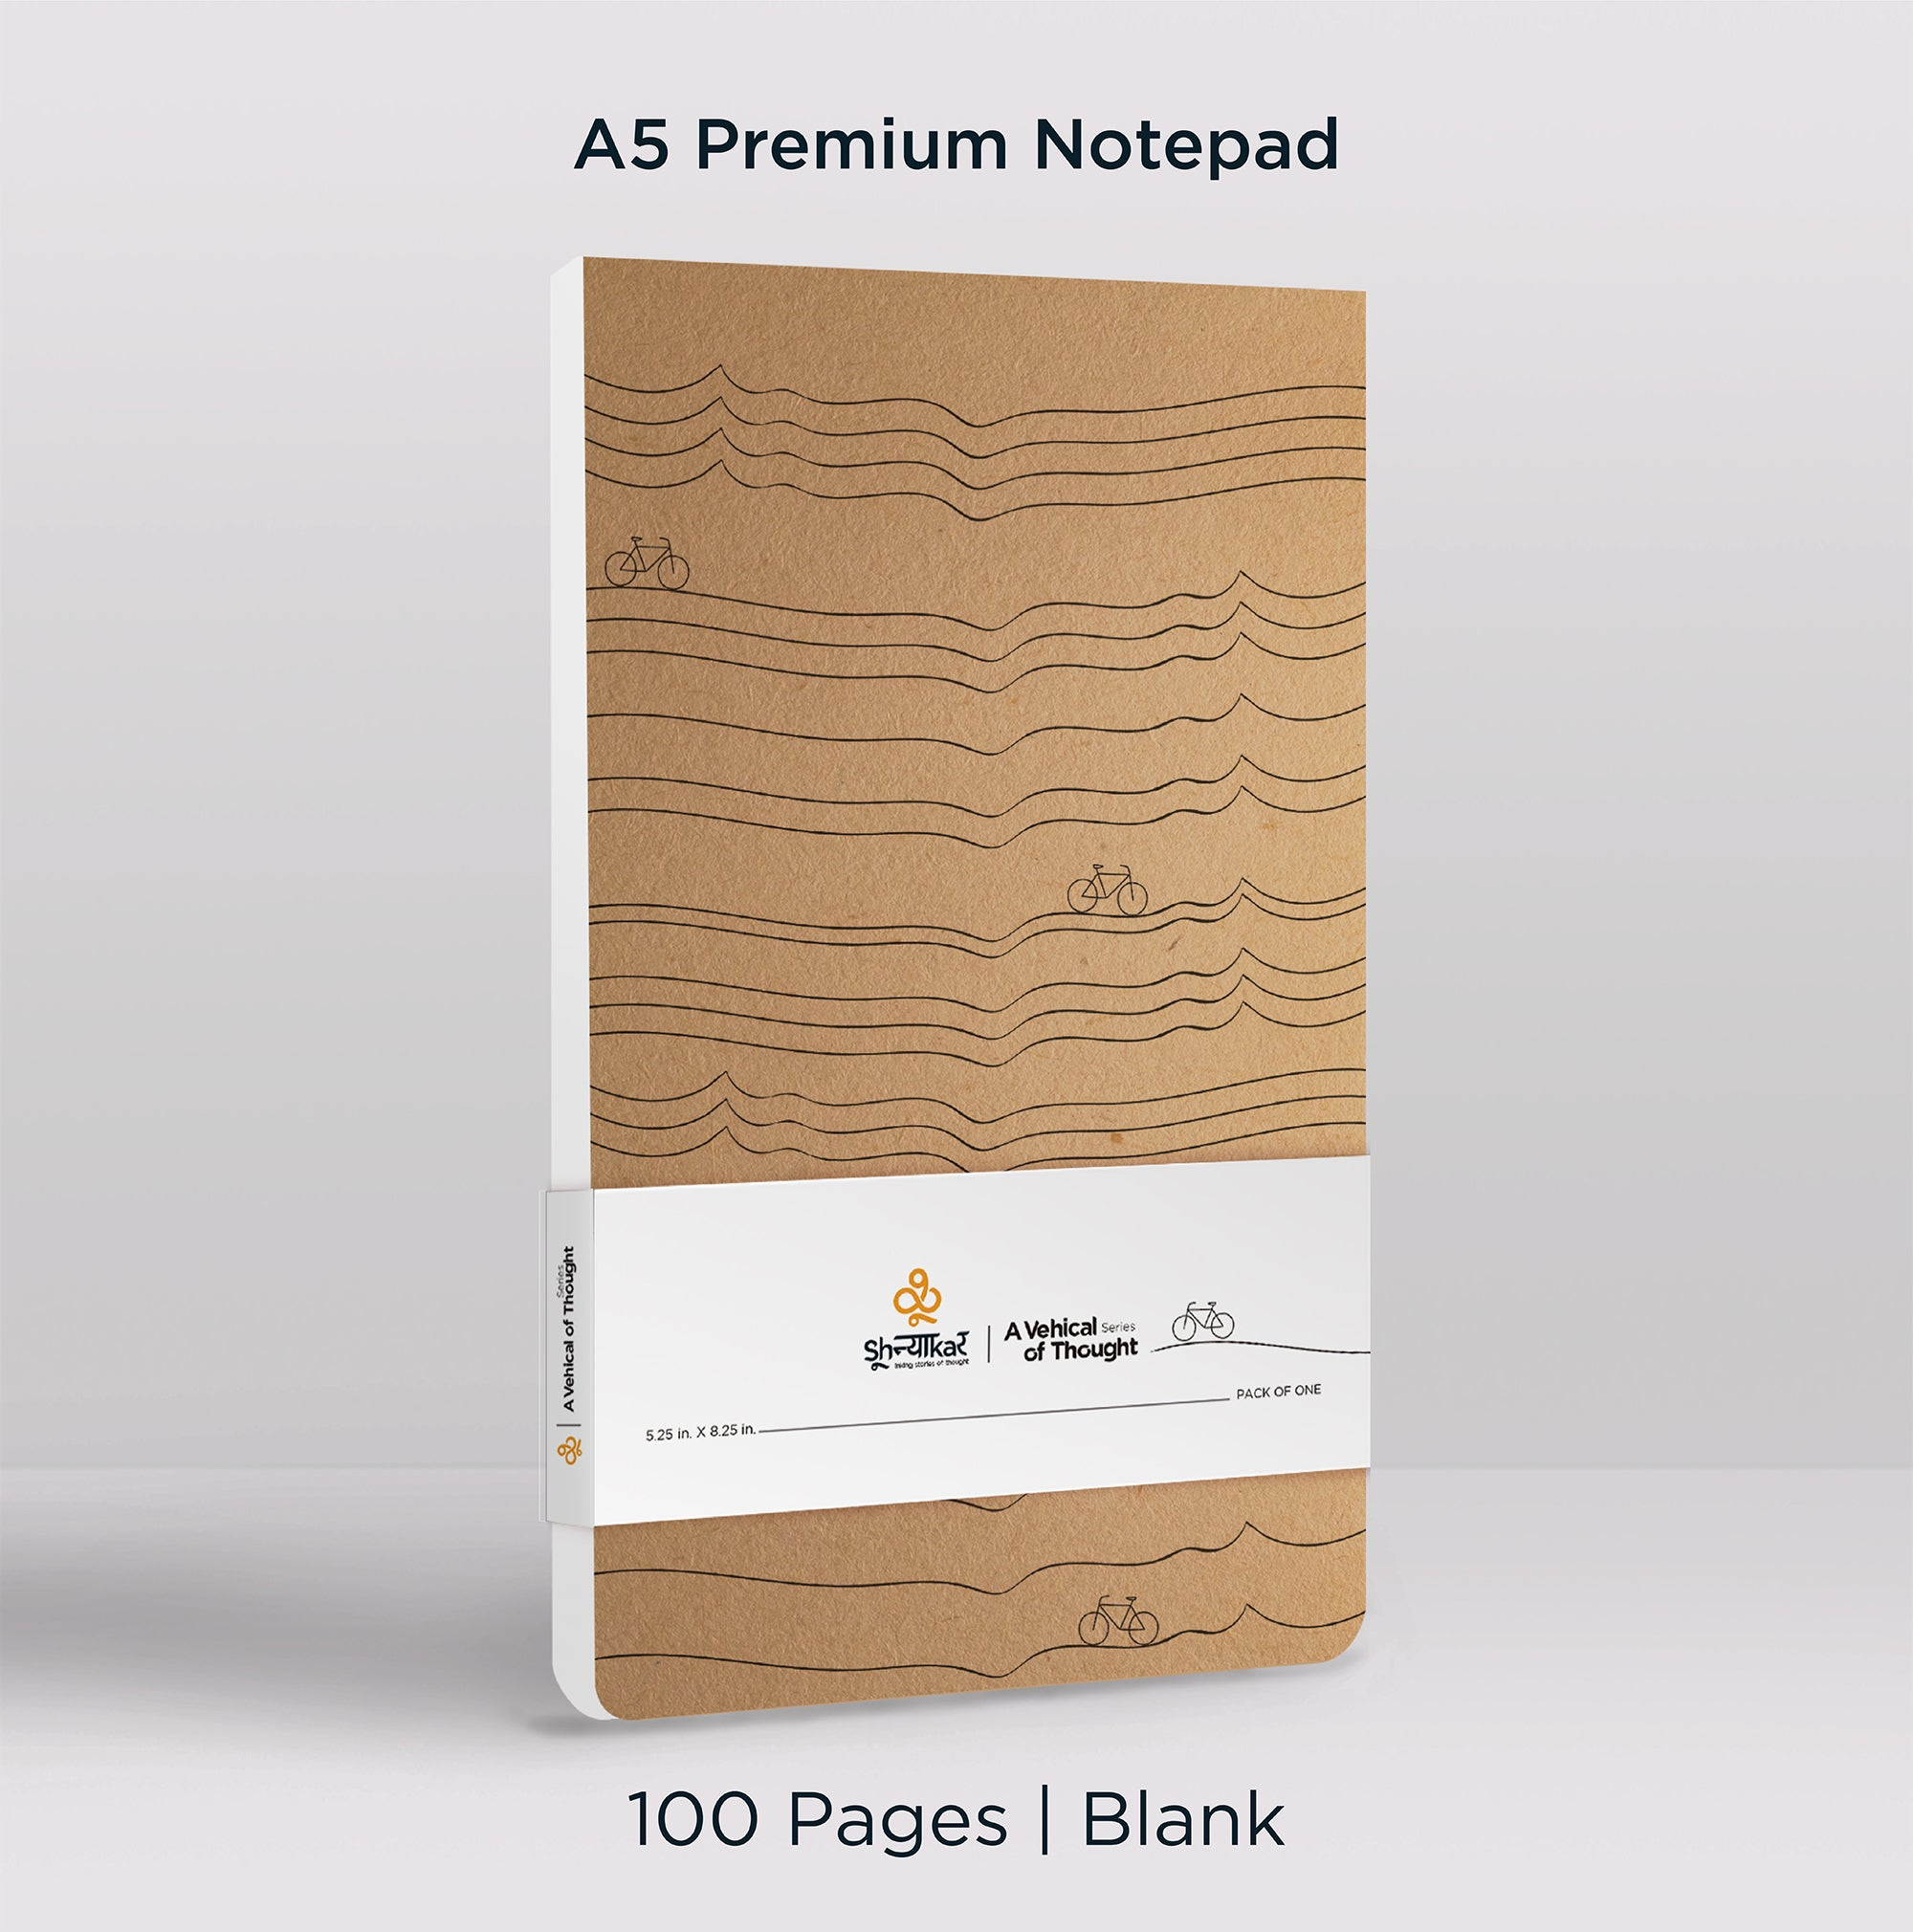 A Vehicle of Thought | A5 Notepad | 100 Pages | Blank